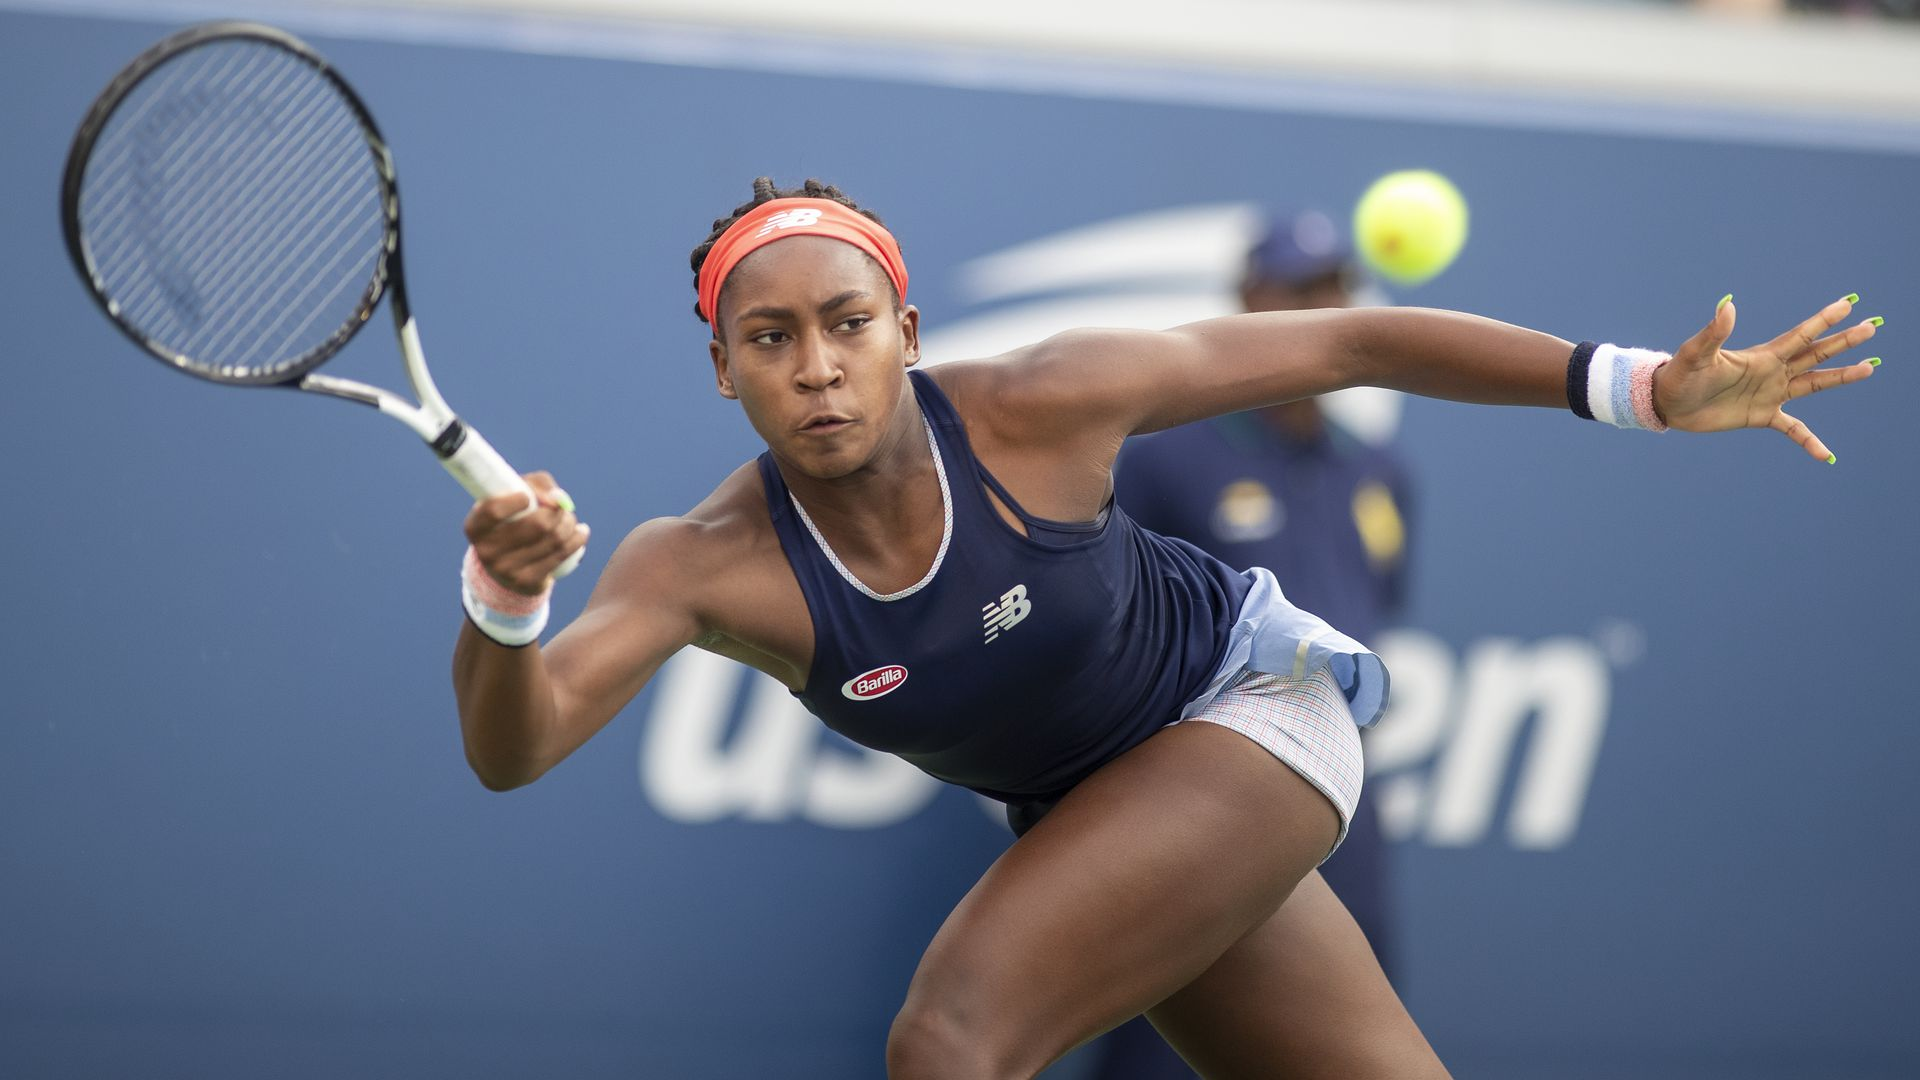 15-year-old Coco Gauff becomes youngest tennis titlist in over a decade